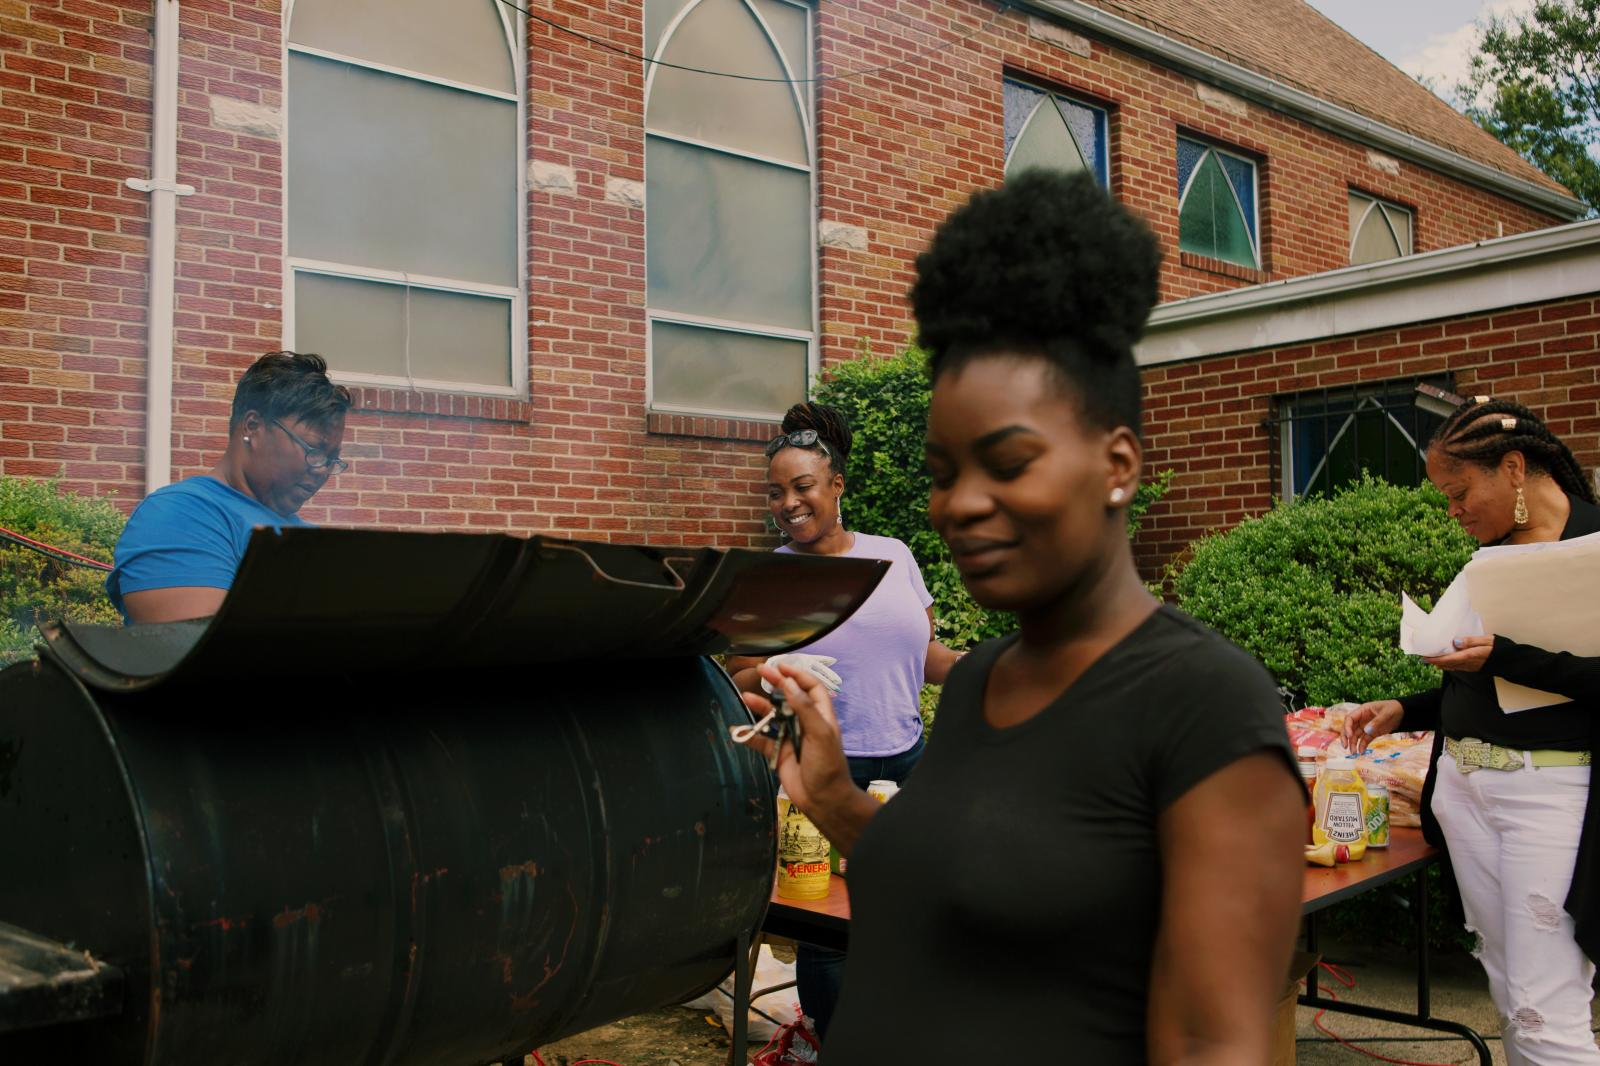 Joy Ligon and Nicole Holloway serve hotdogs and hamburgers to the attendees at the block party hosted by The Shiloh Baptist Church of Jamaica in Queens, New York.